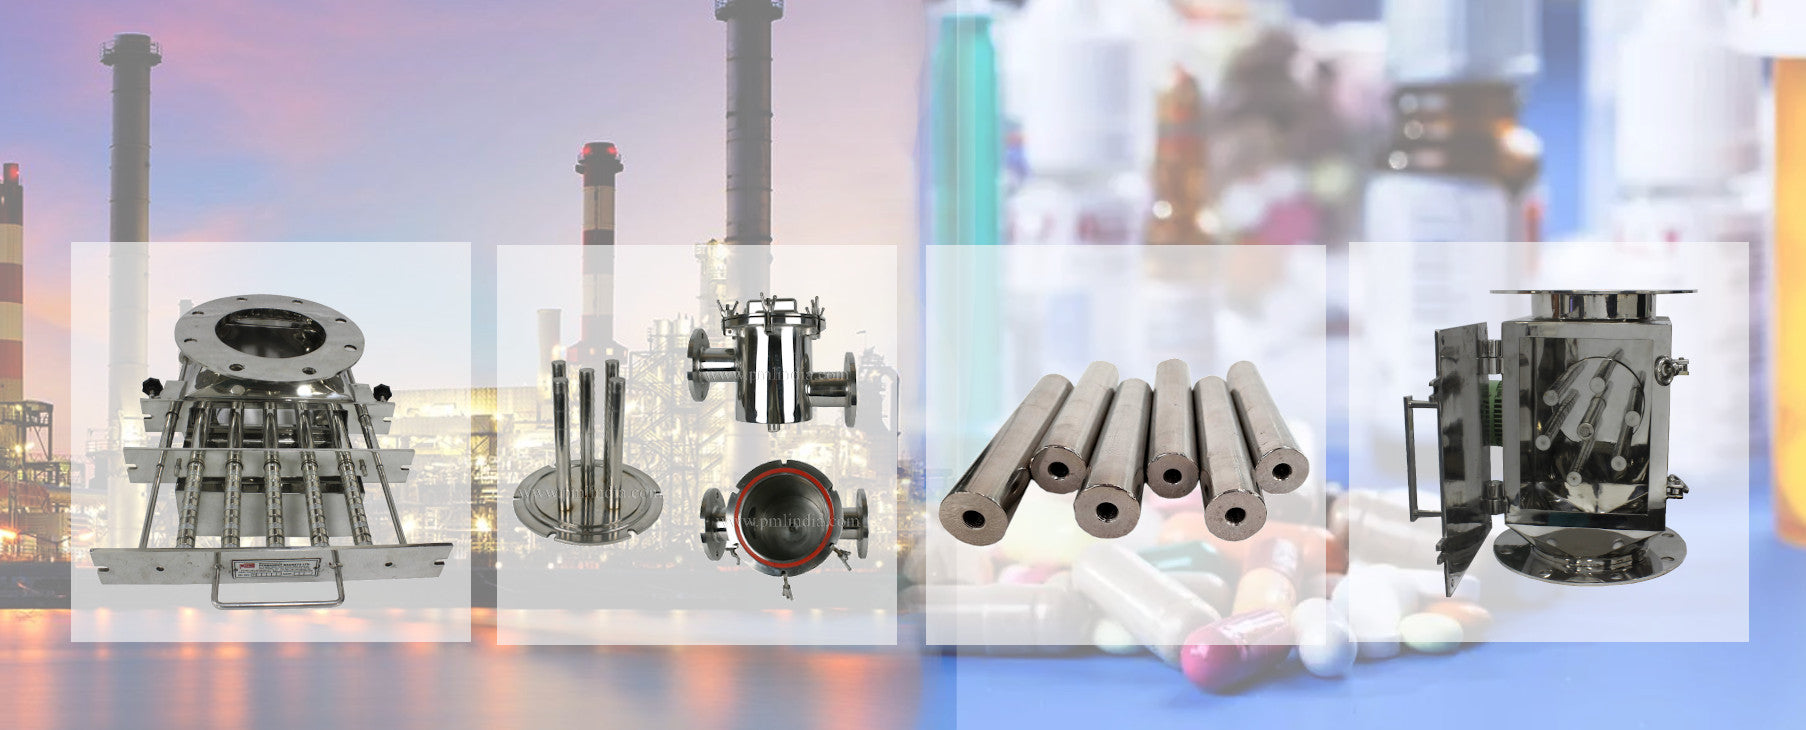 Pharma & Chemical industry background Image